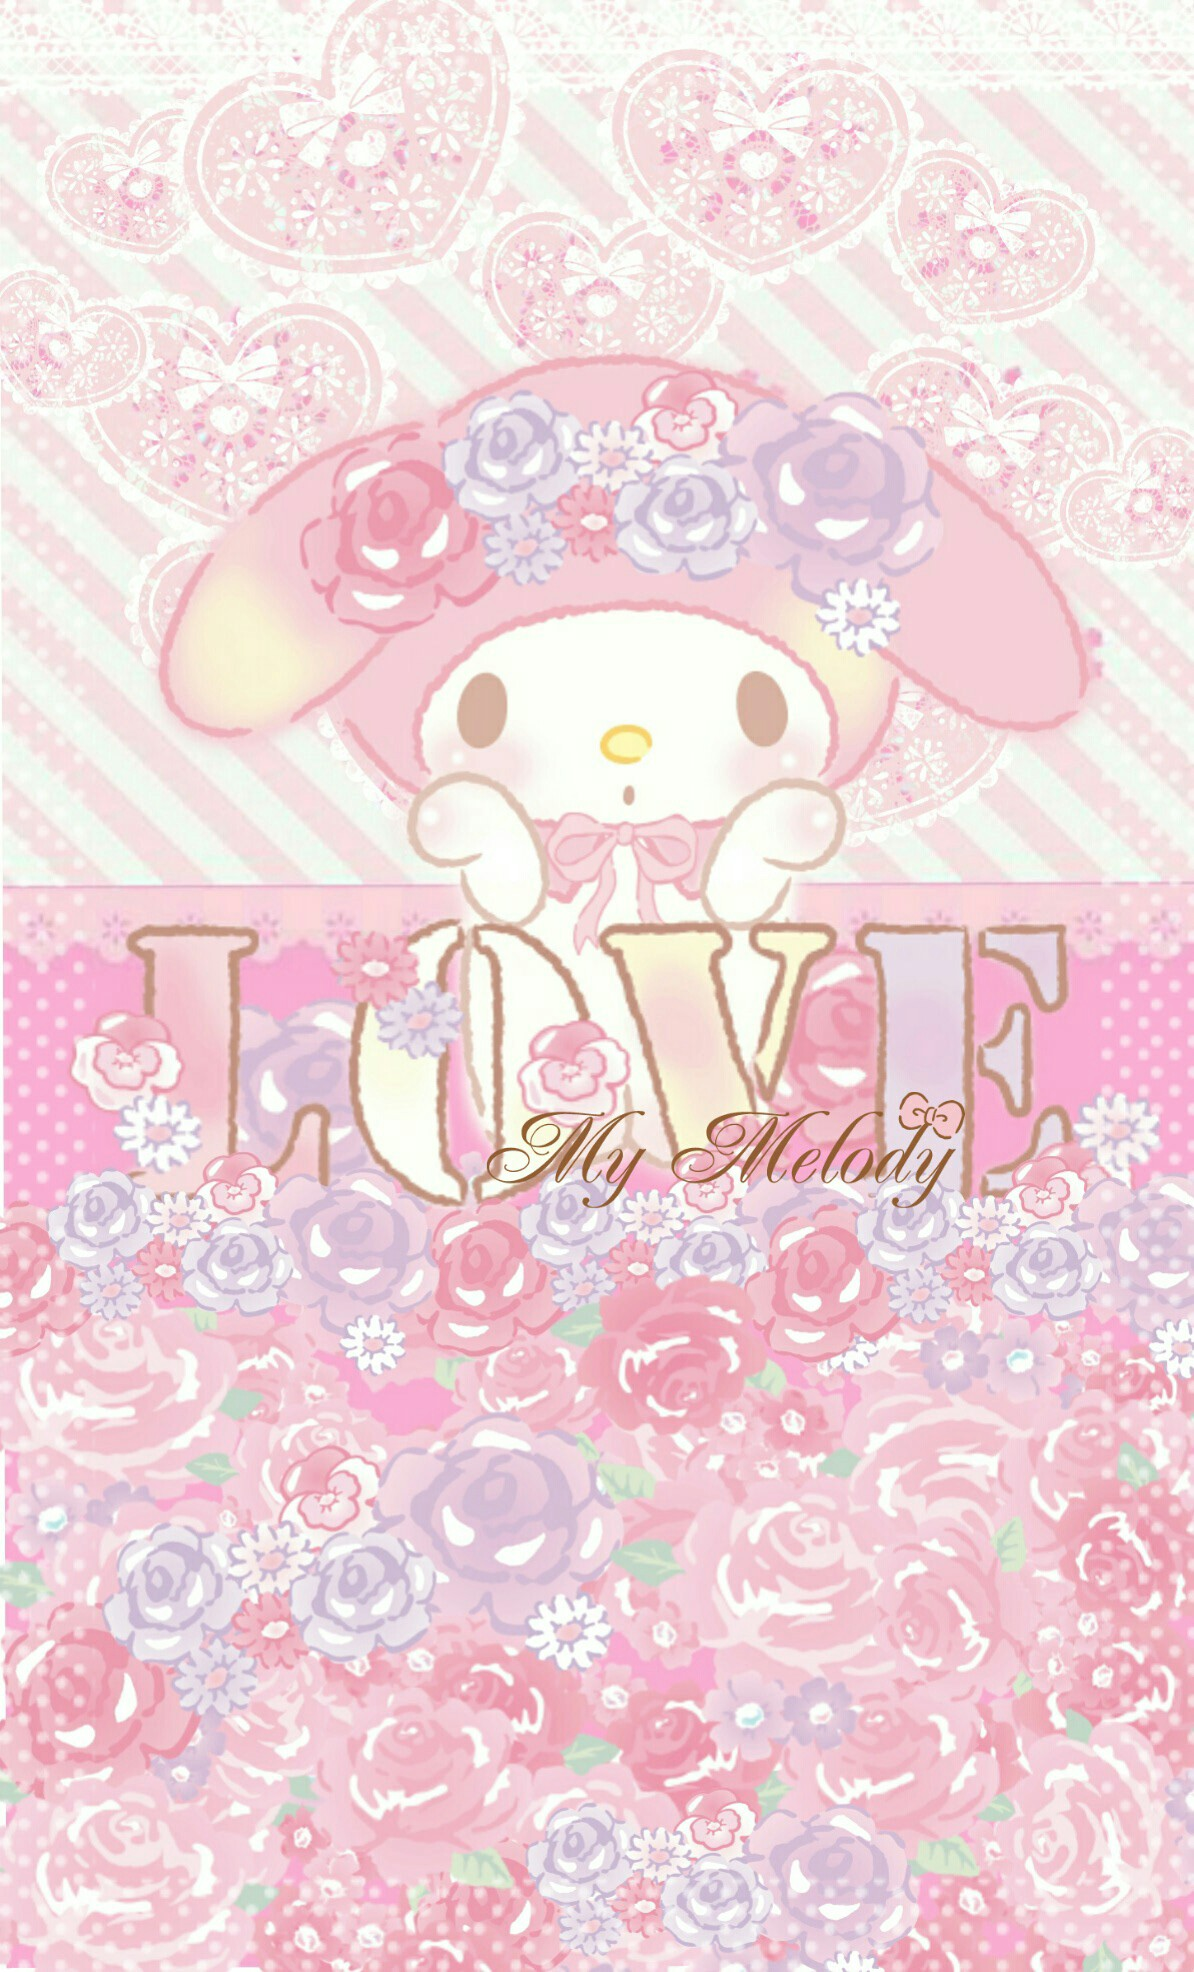 Cute Wallpaper Rilakkuma My Melody Wallpaper Downloadwallpaper Org